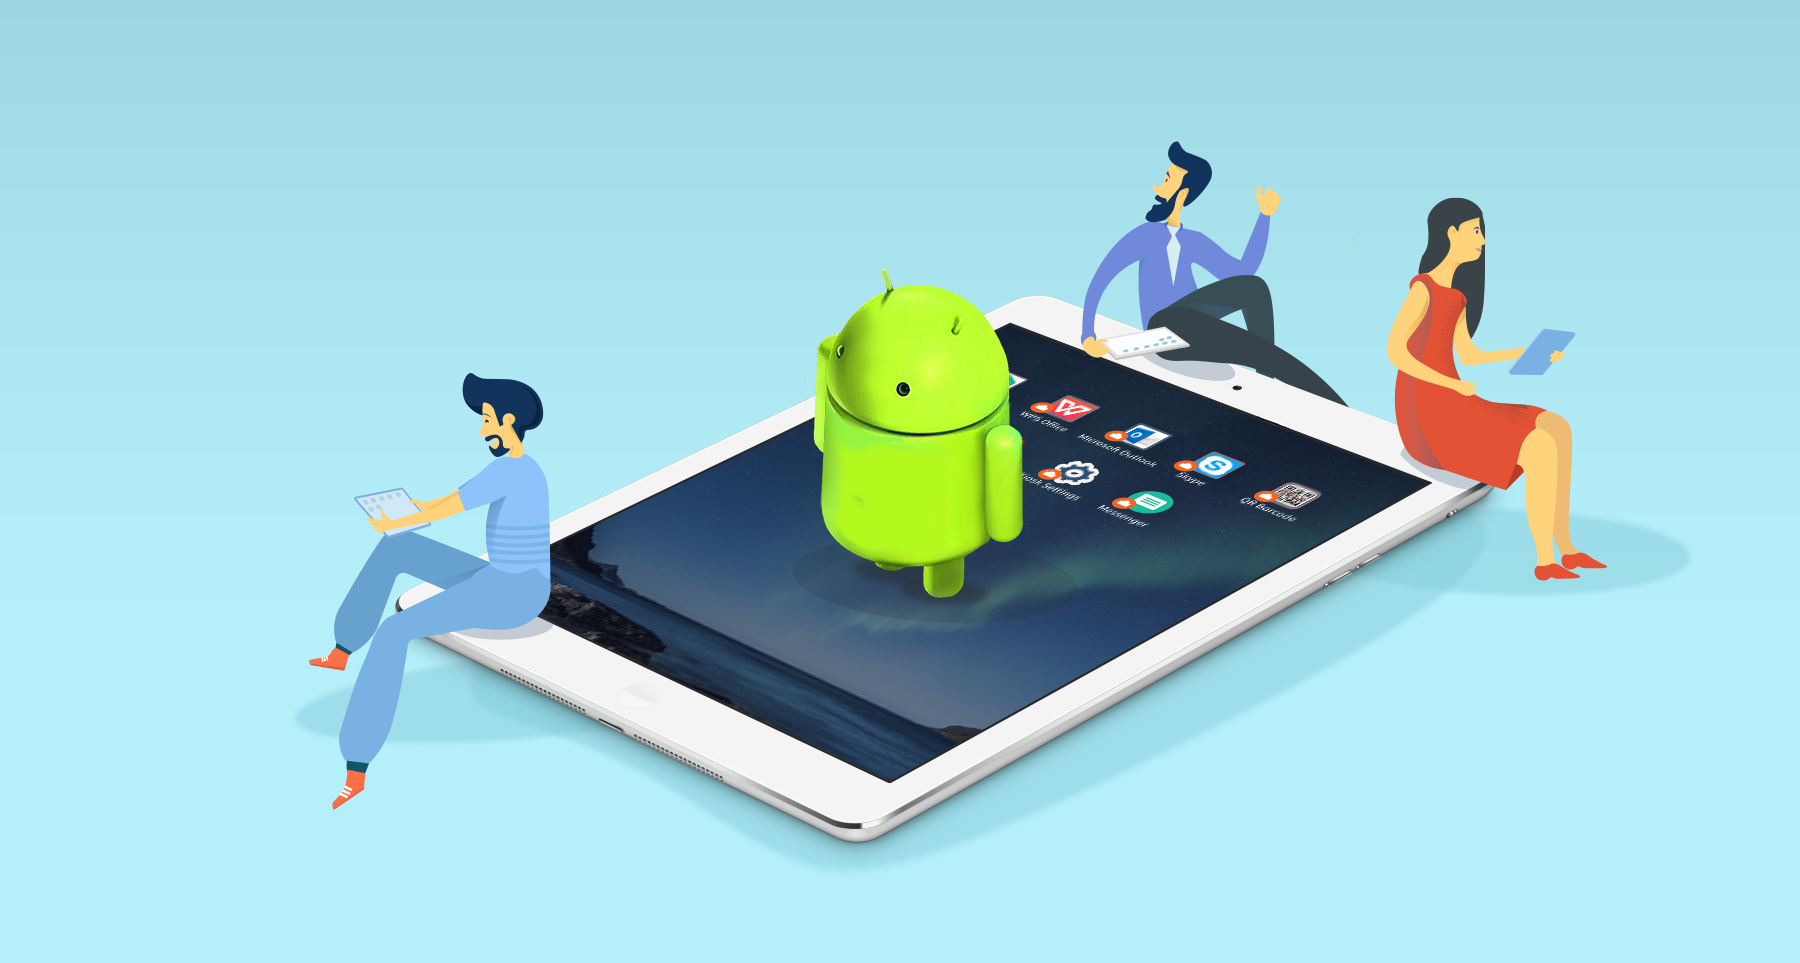 Hexnode MDM Implements Android for Work for Separating Work